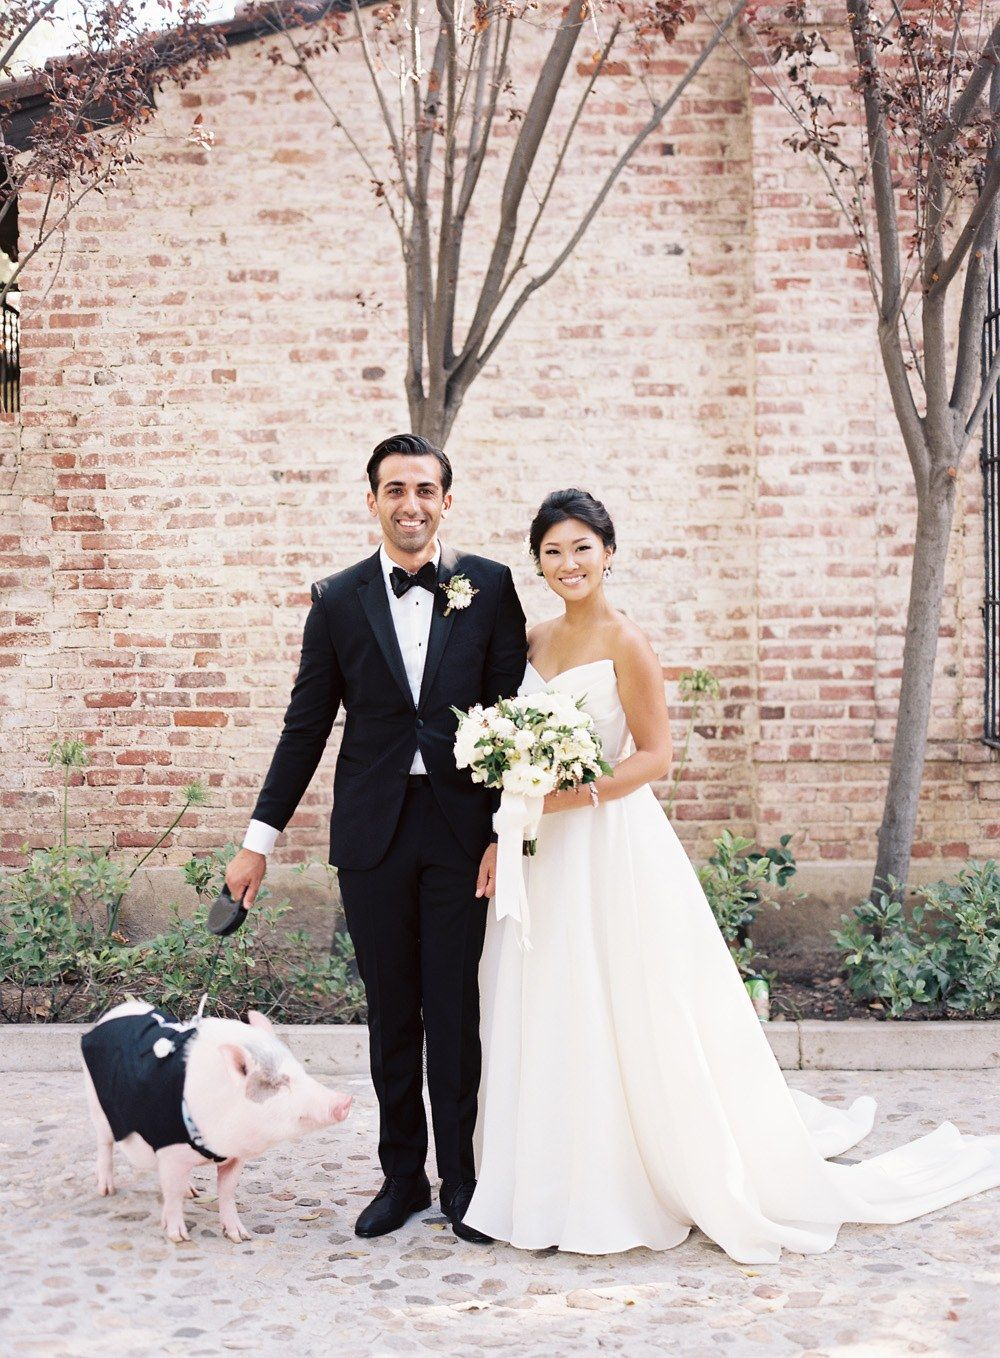 cool wedding shot ideas%0A Wedding Ideas That Incorporate Your Fur Baby into the Big Day   Brides